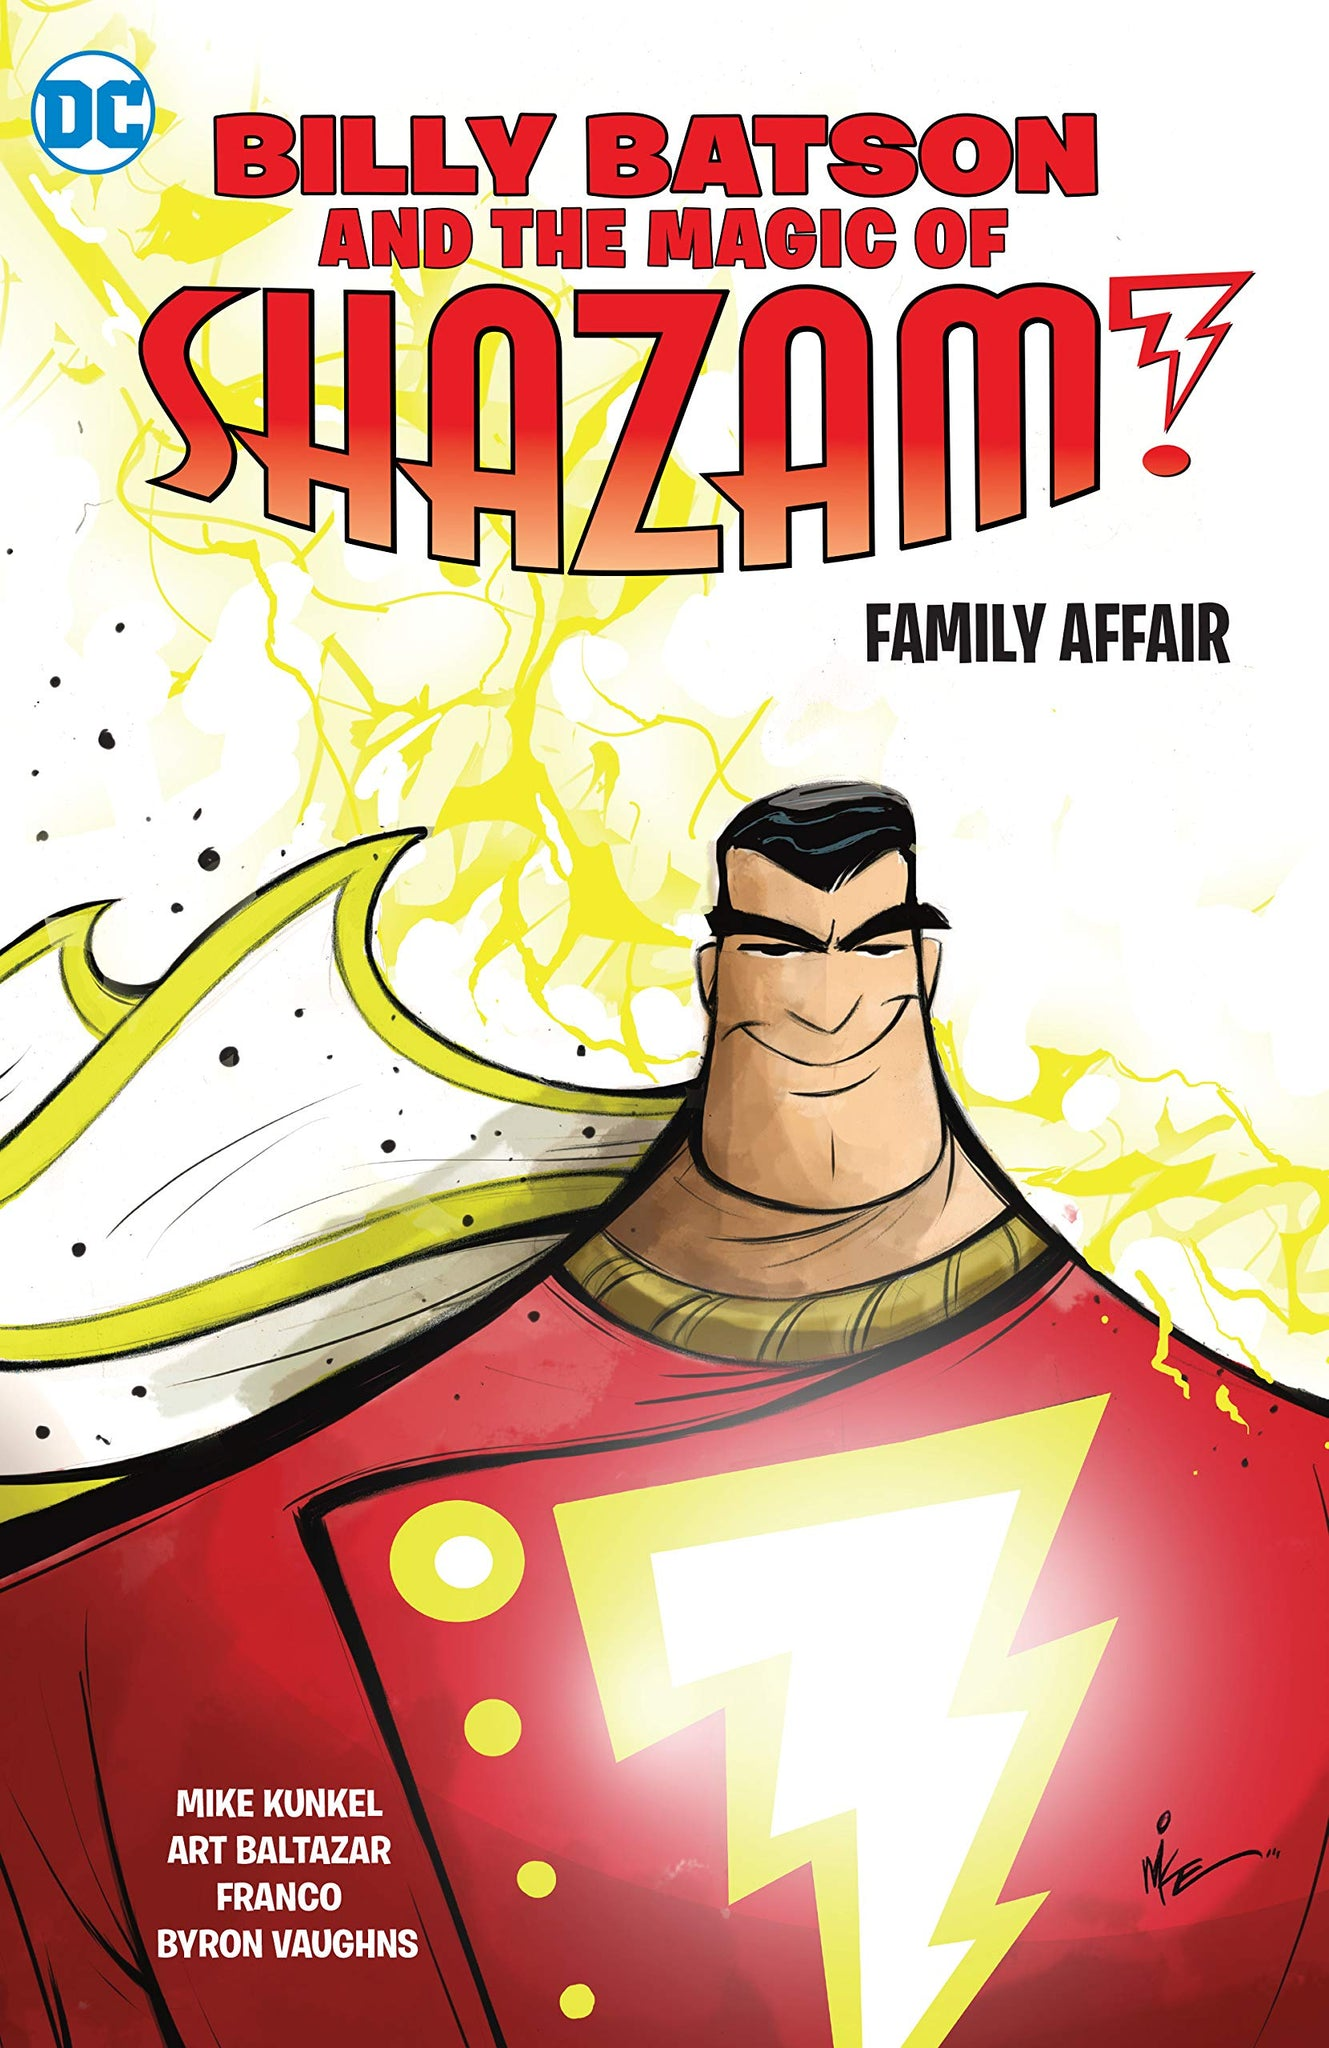 Billy Batson and the Magic of Shazam! (2008) Book 1